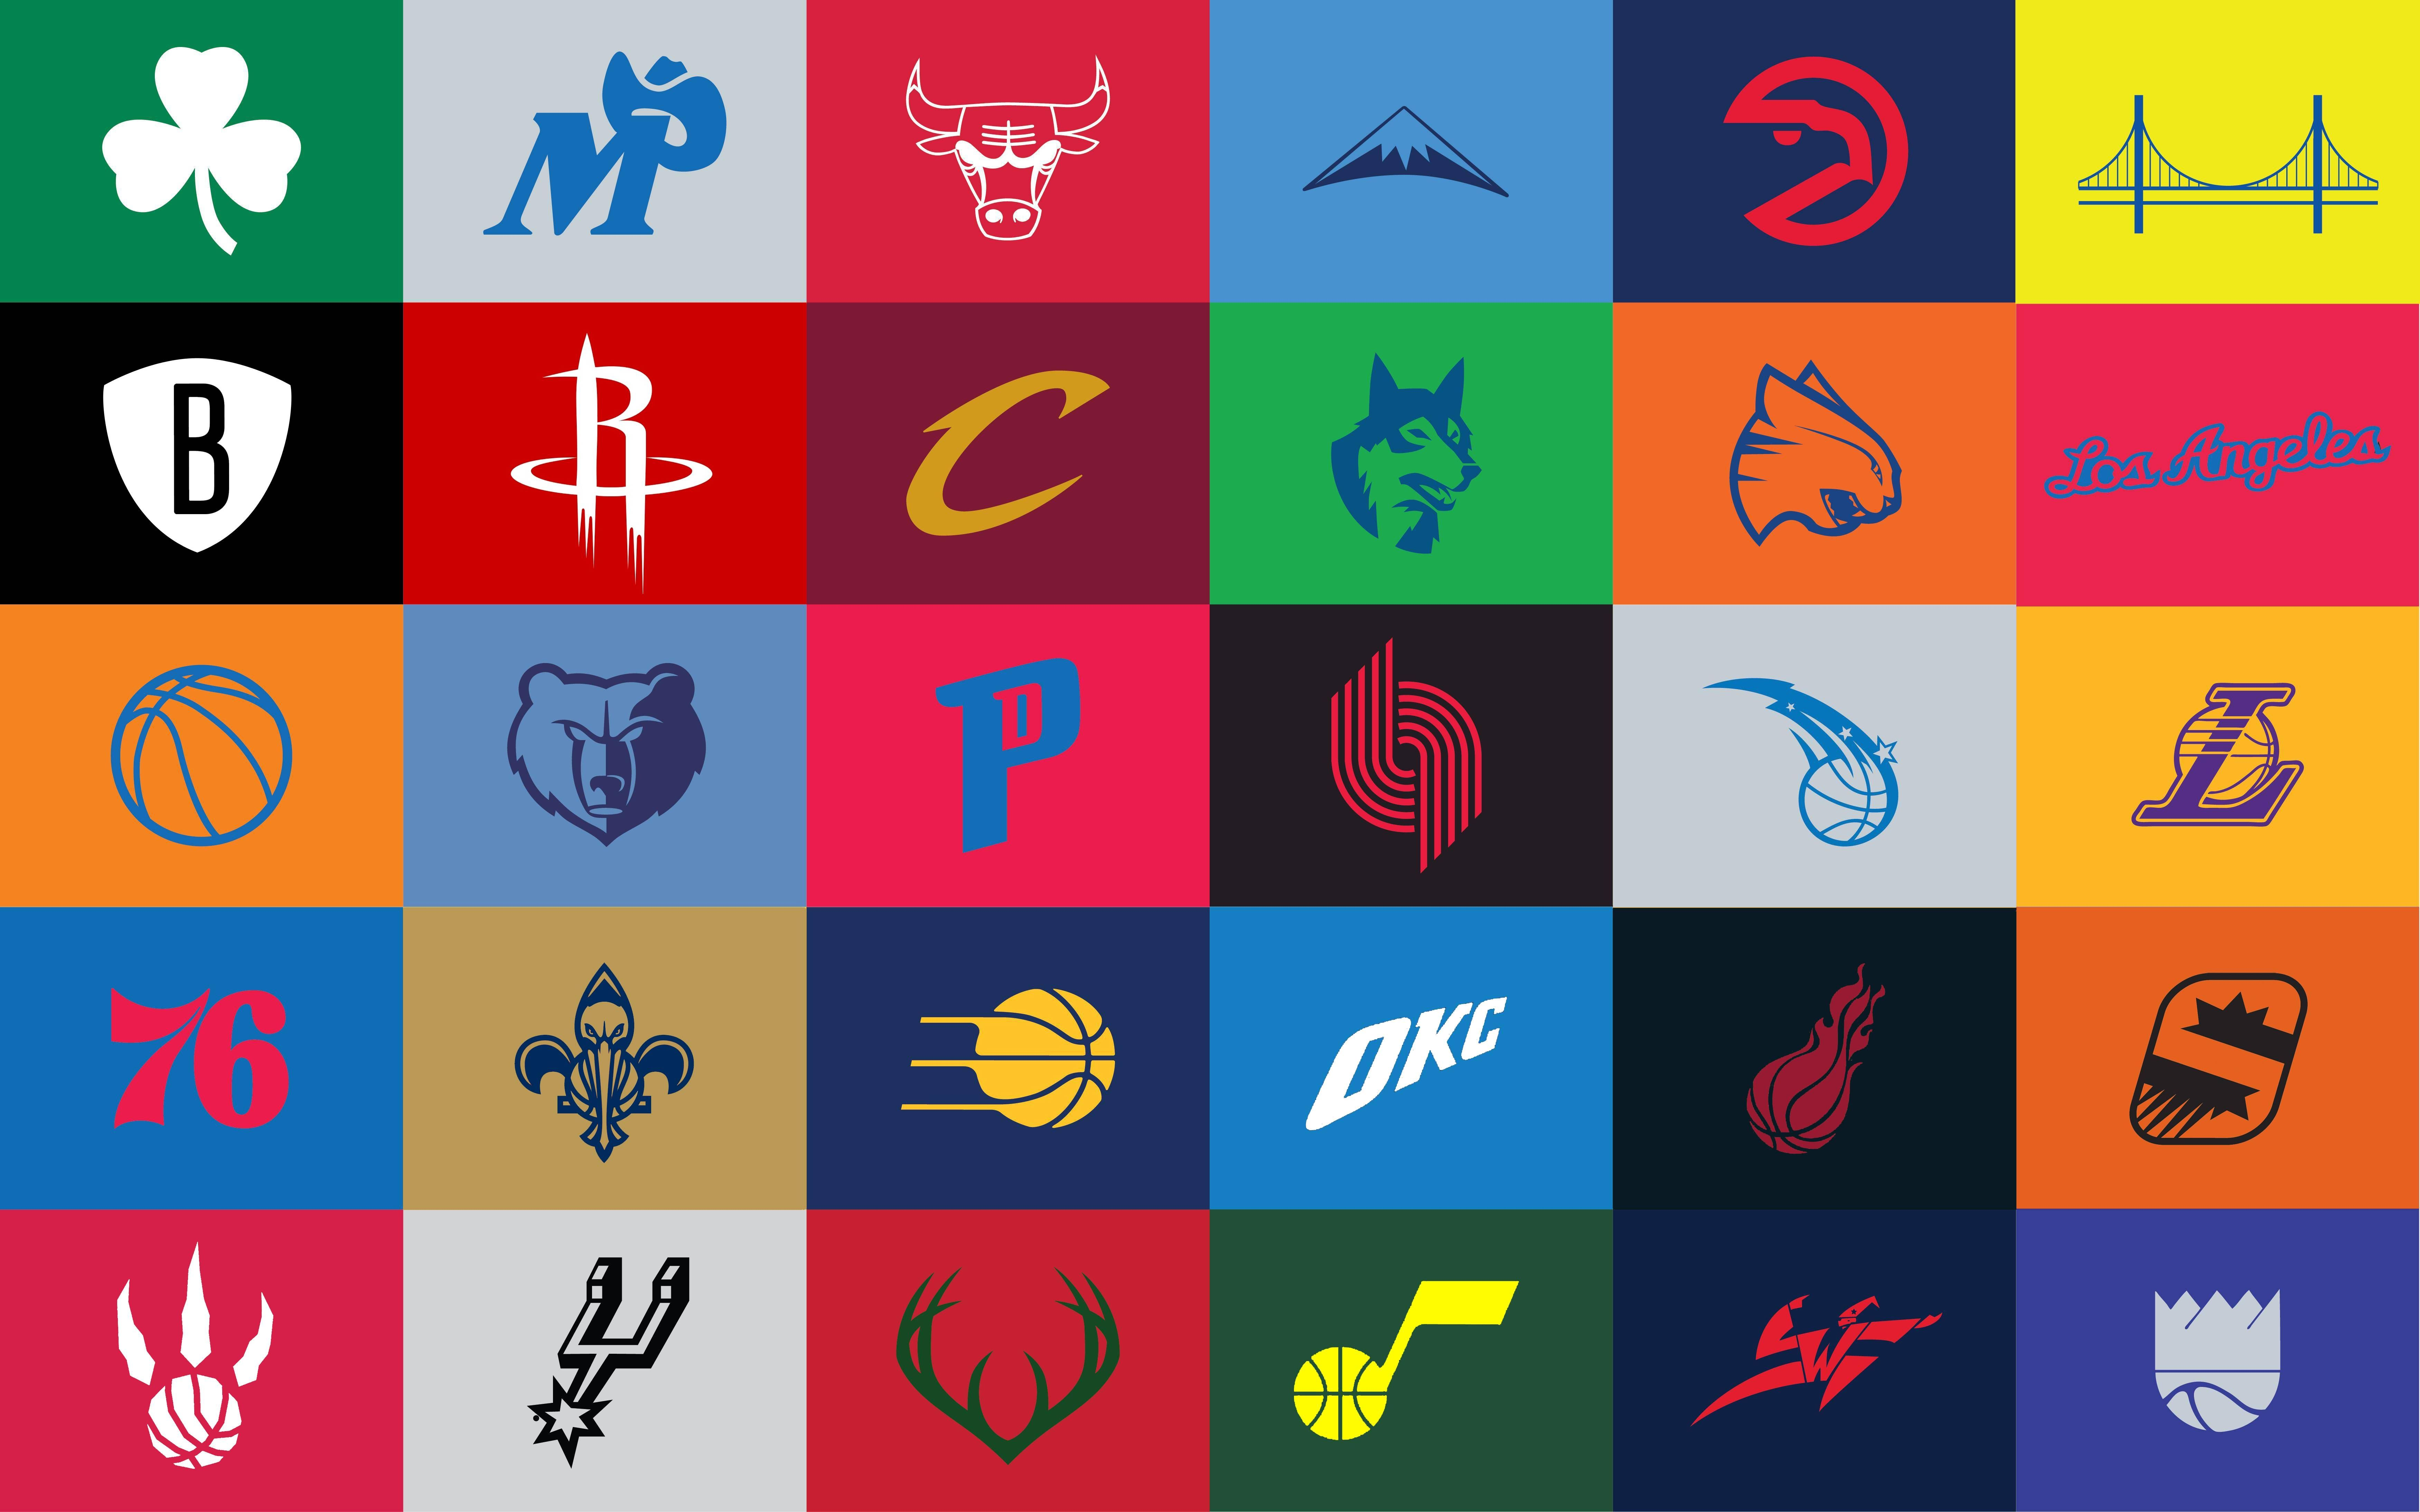 I Made A Few Adjustments To The Minimalist Nba Logos Wallpaper Made By U Dyoon19452 A Few Months Ago Nba Logo Nba Wallpapers Basketball Wallpaper